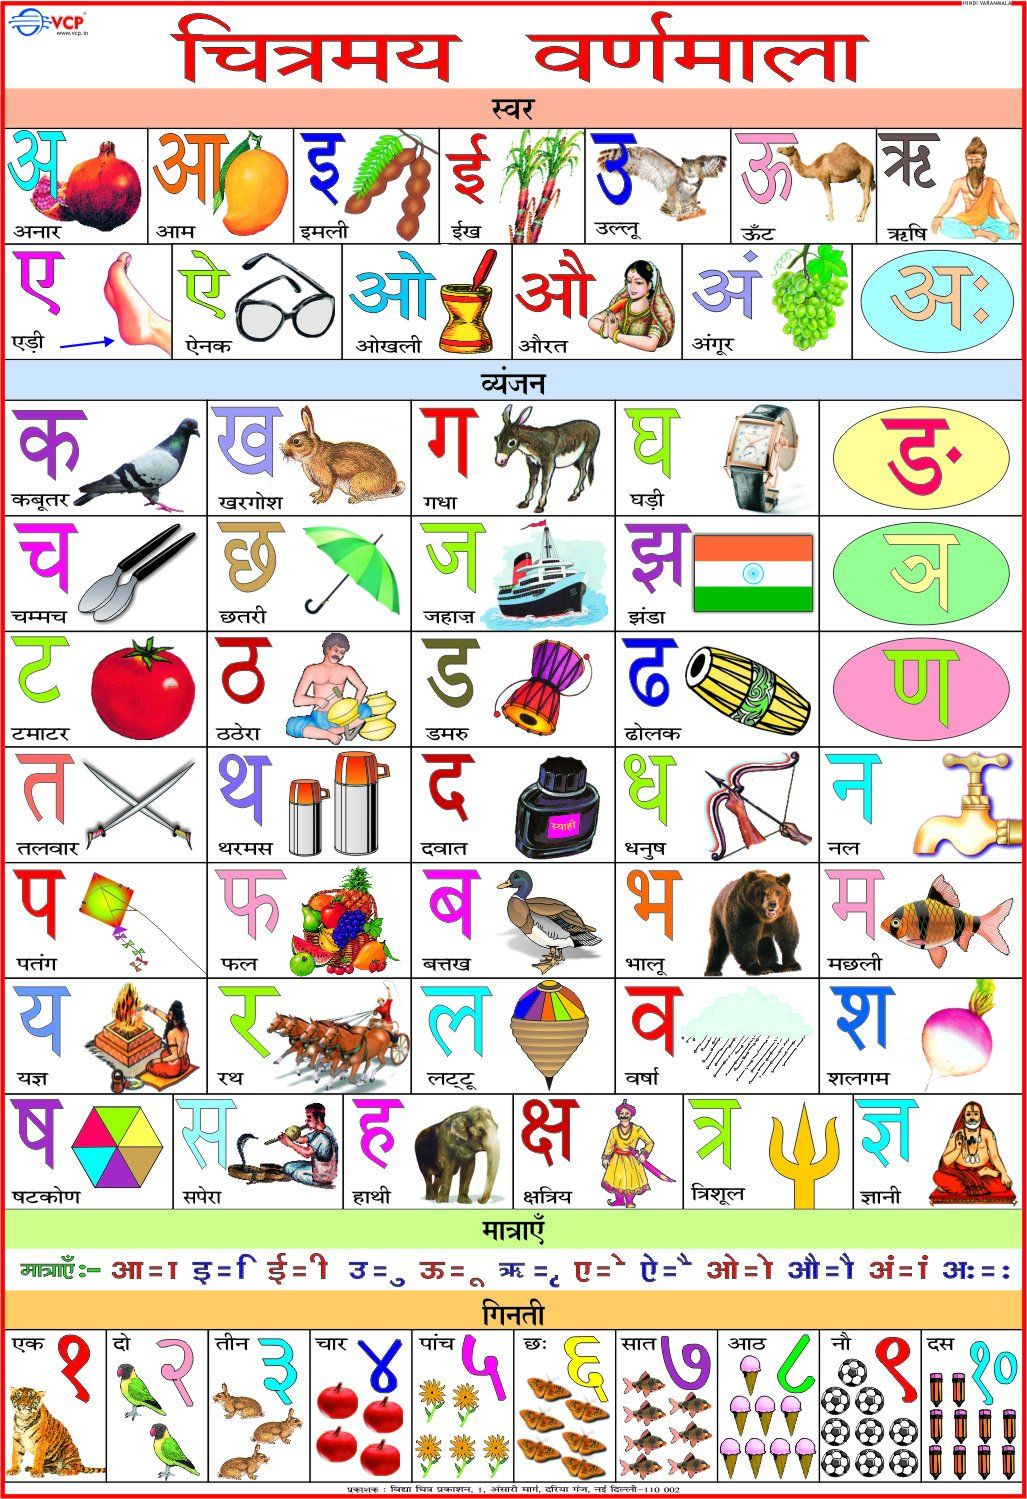 If You Are Interested To Learn Hindi Alphabet Then You